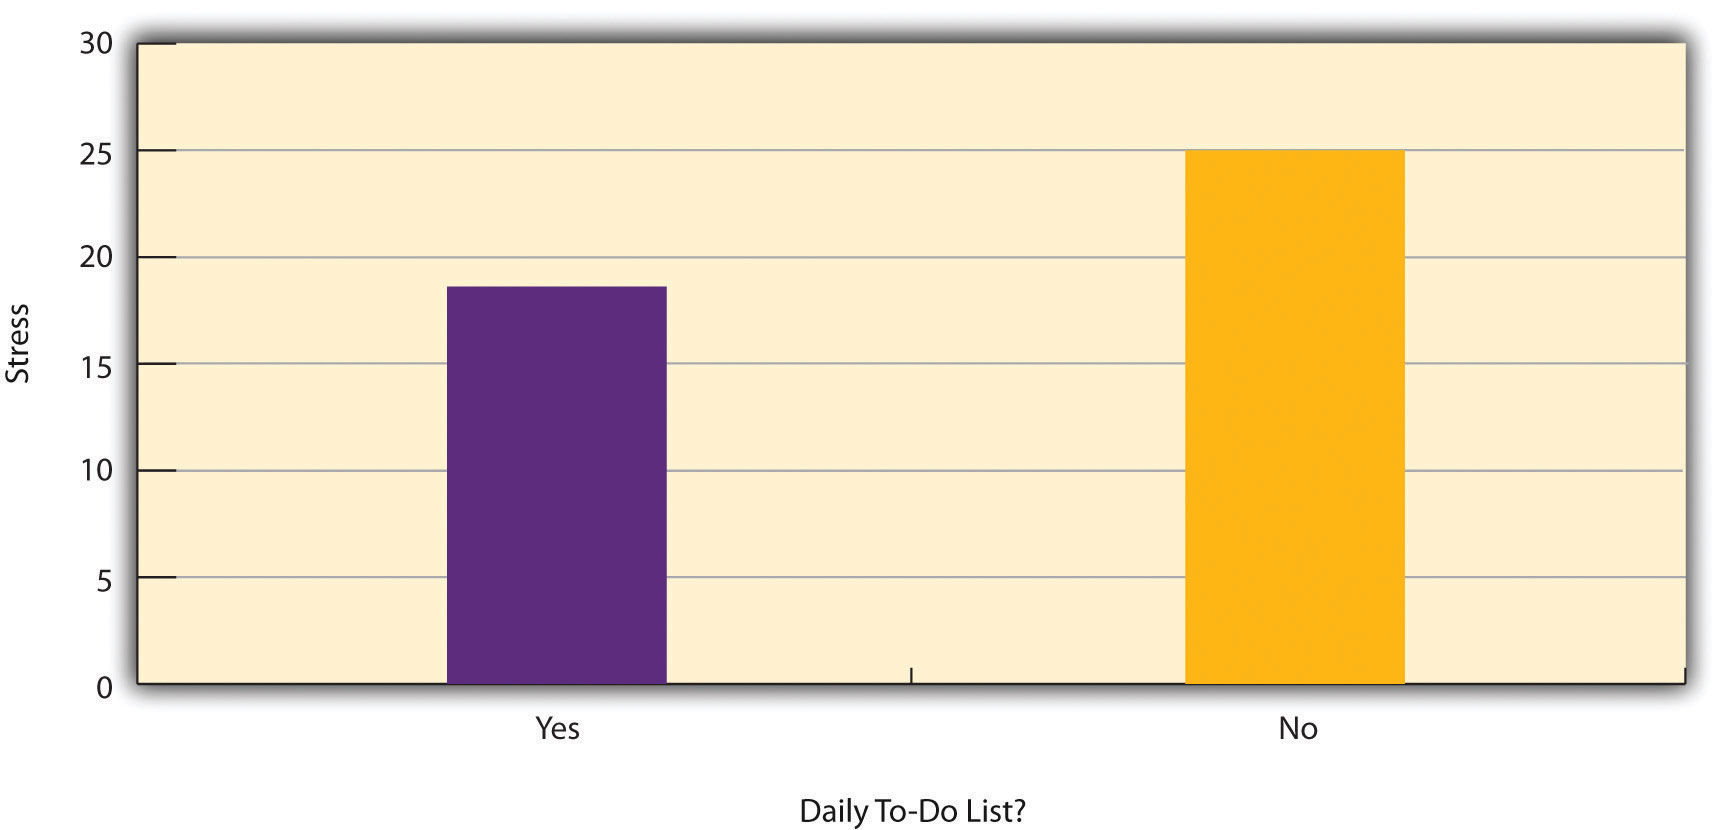 Results of a Hypothetical Study on Whether People Who Make Daily To-Do Lists Experience Less Stress Than People Who Do Not Make Such Lists